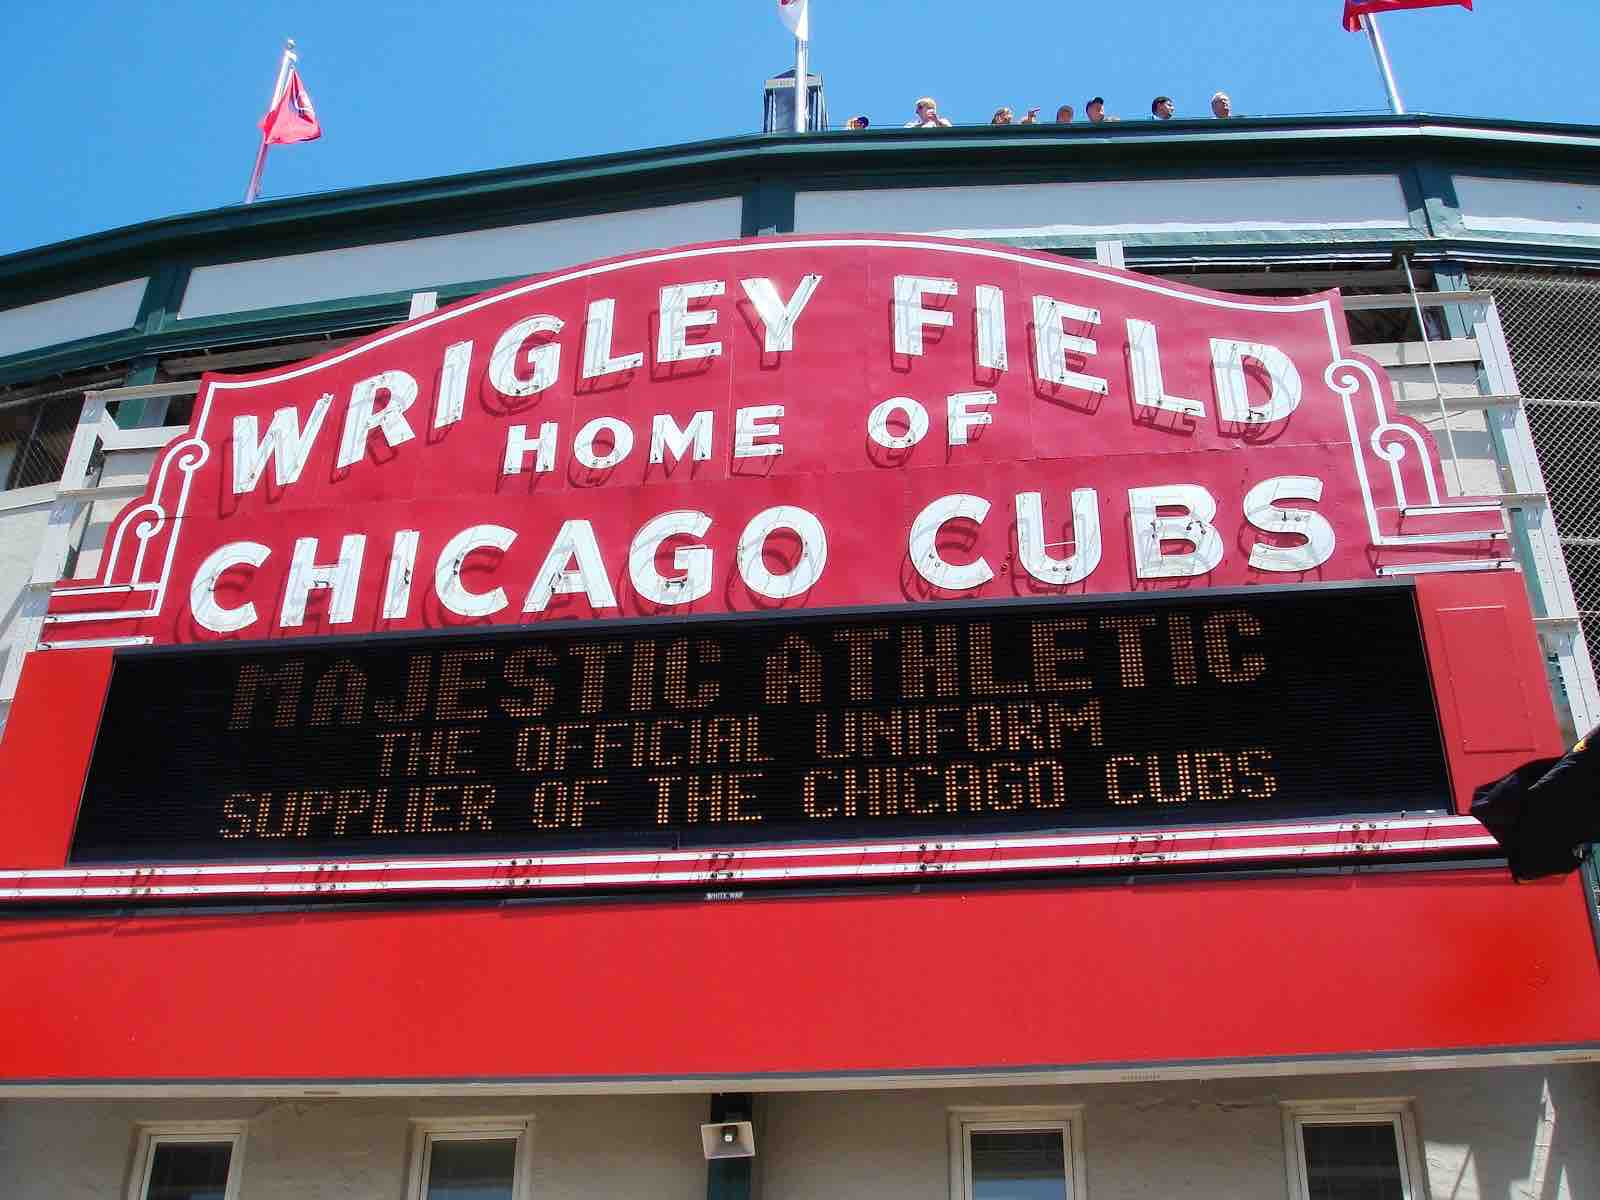 Should You Go to a Cubs or White Sox Game? Chicago MLB Games ComparedShould You Go to a Cubs or White Sox Game? Chicago MLB Games Compared